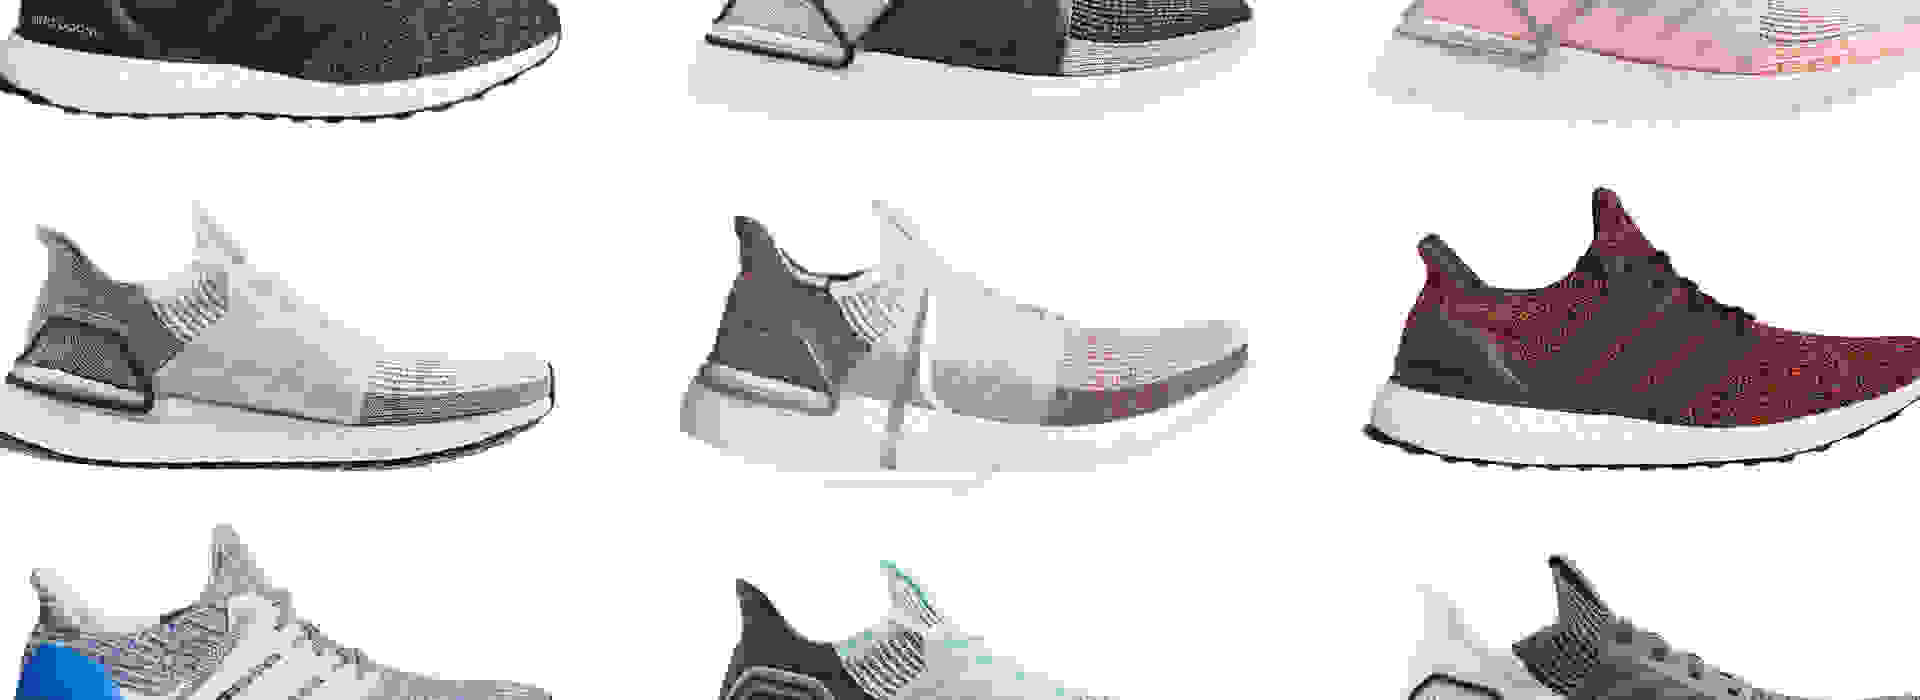 difference between ultra boost and pure boost